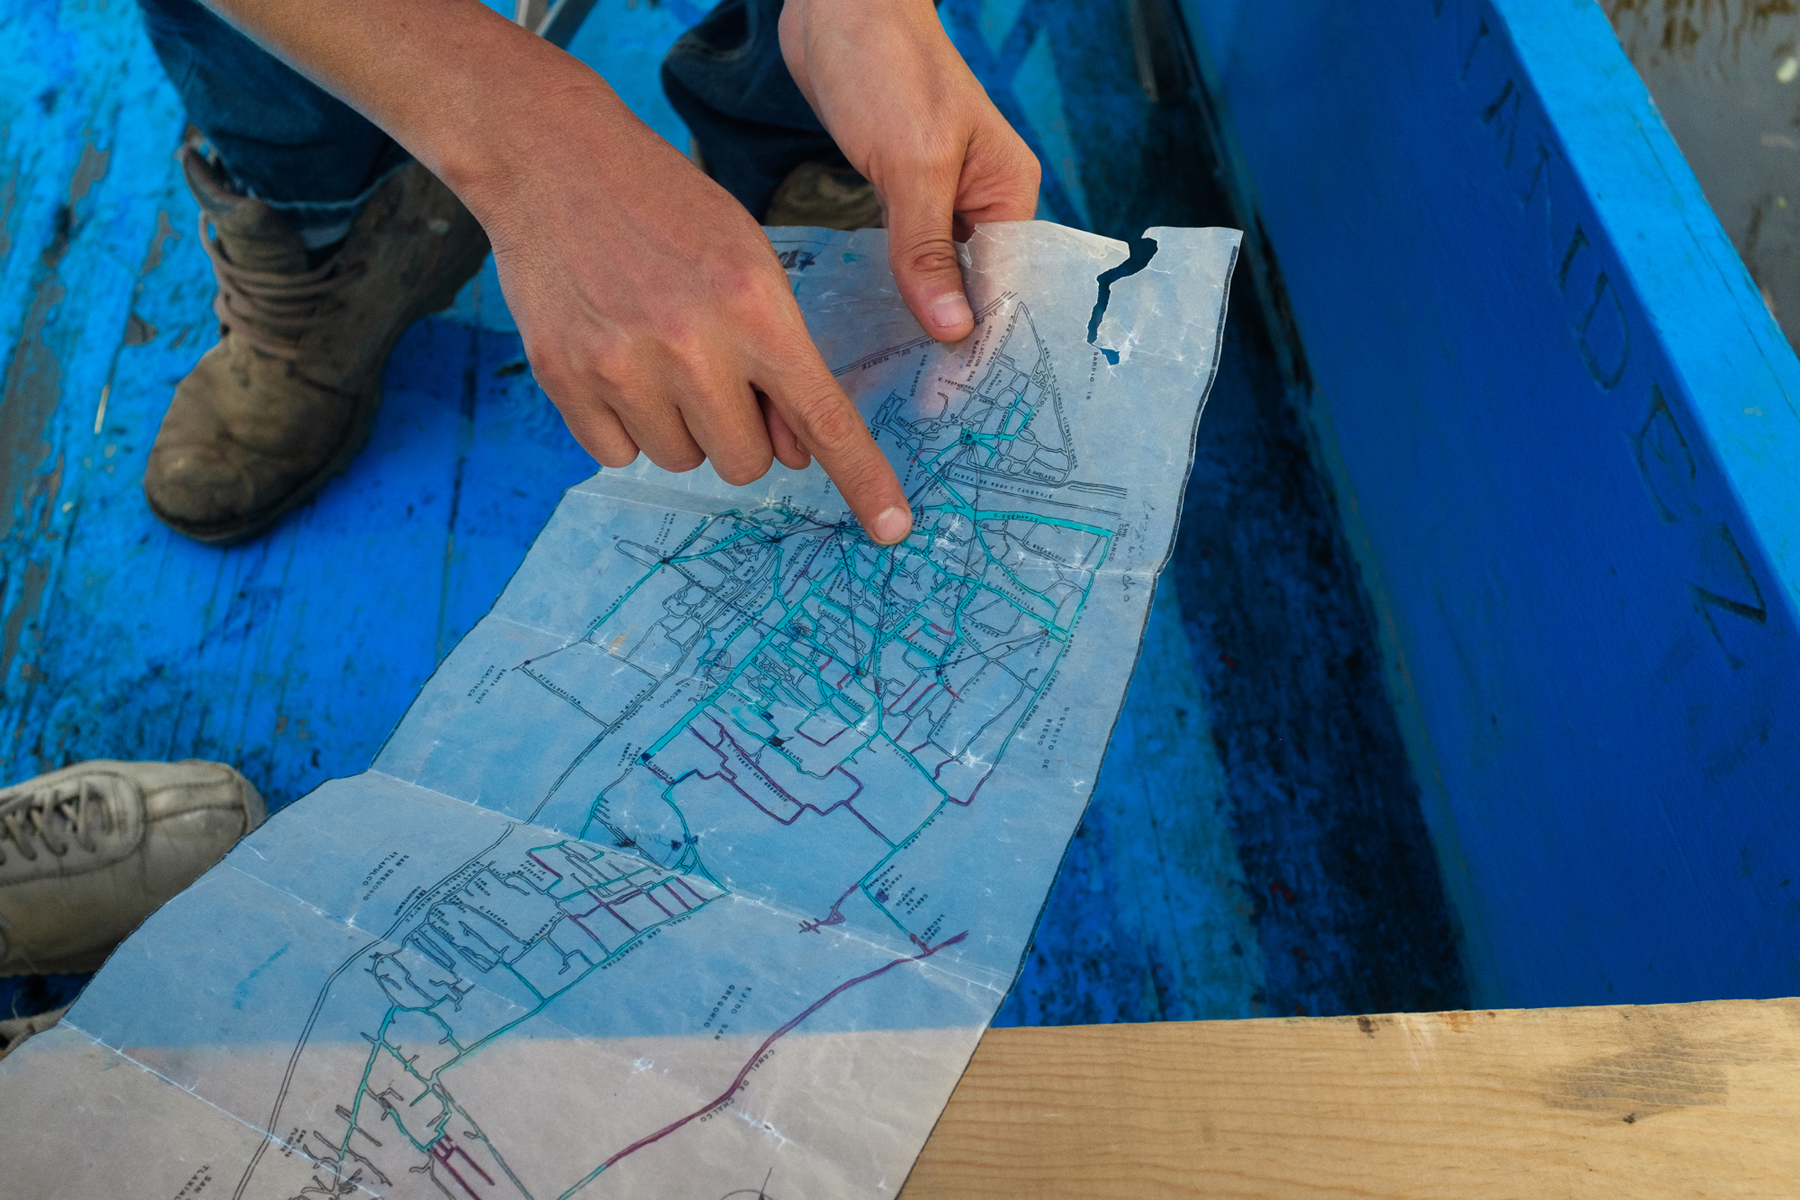 March 3, 2018 - Mexico City, Mexico: Carlos Maravilla Santos, co-founder of Plan Acalli, traces currently passable routes on an intricate map of the canals of Xochimilco. (GOOD Magazine/Mallika Vora). (GOOD Magazine/Mallika Vora)